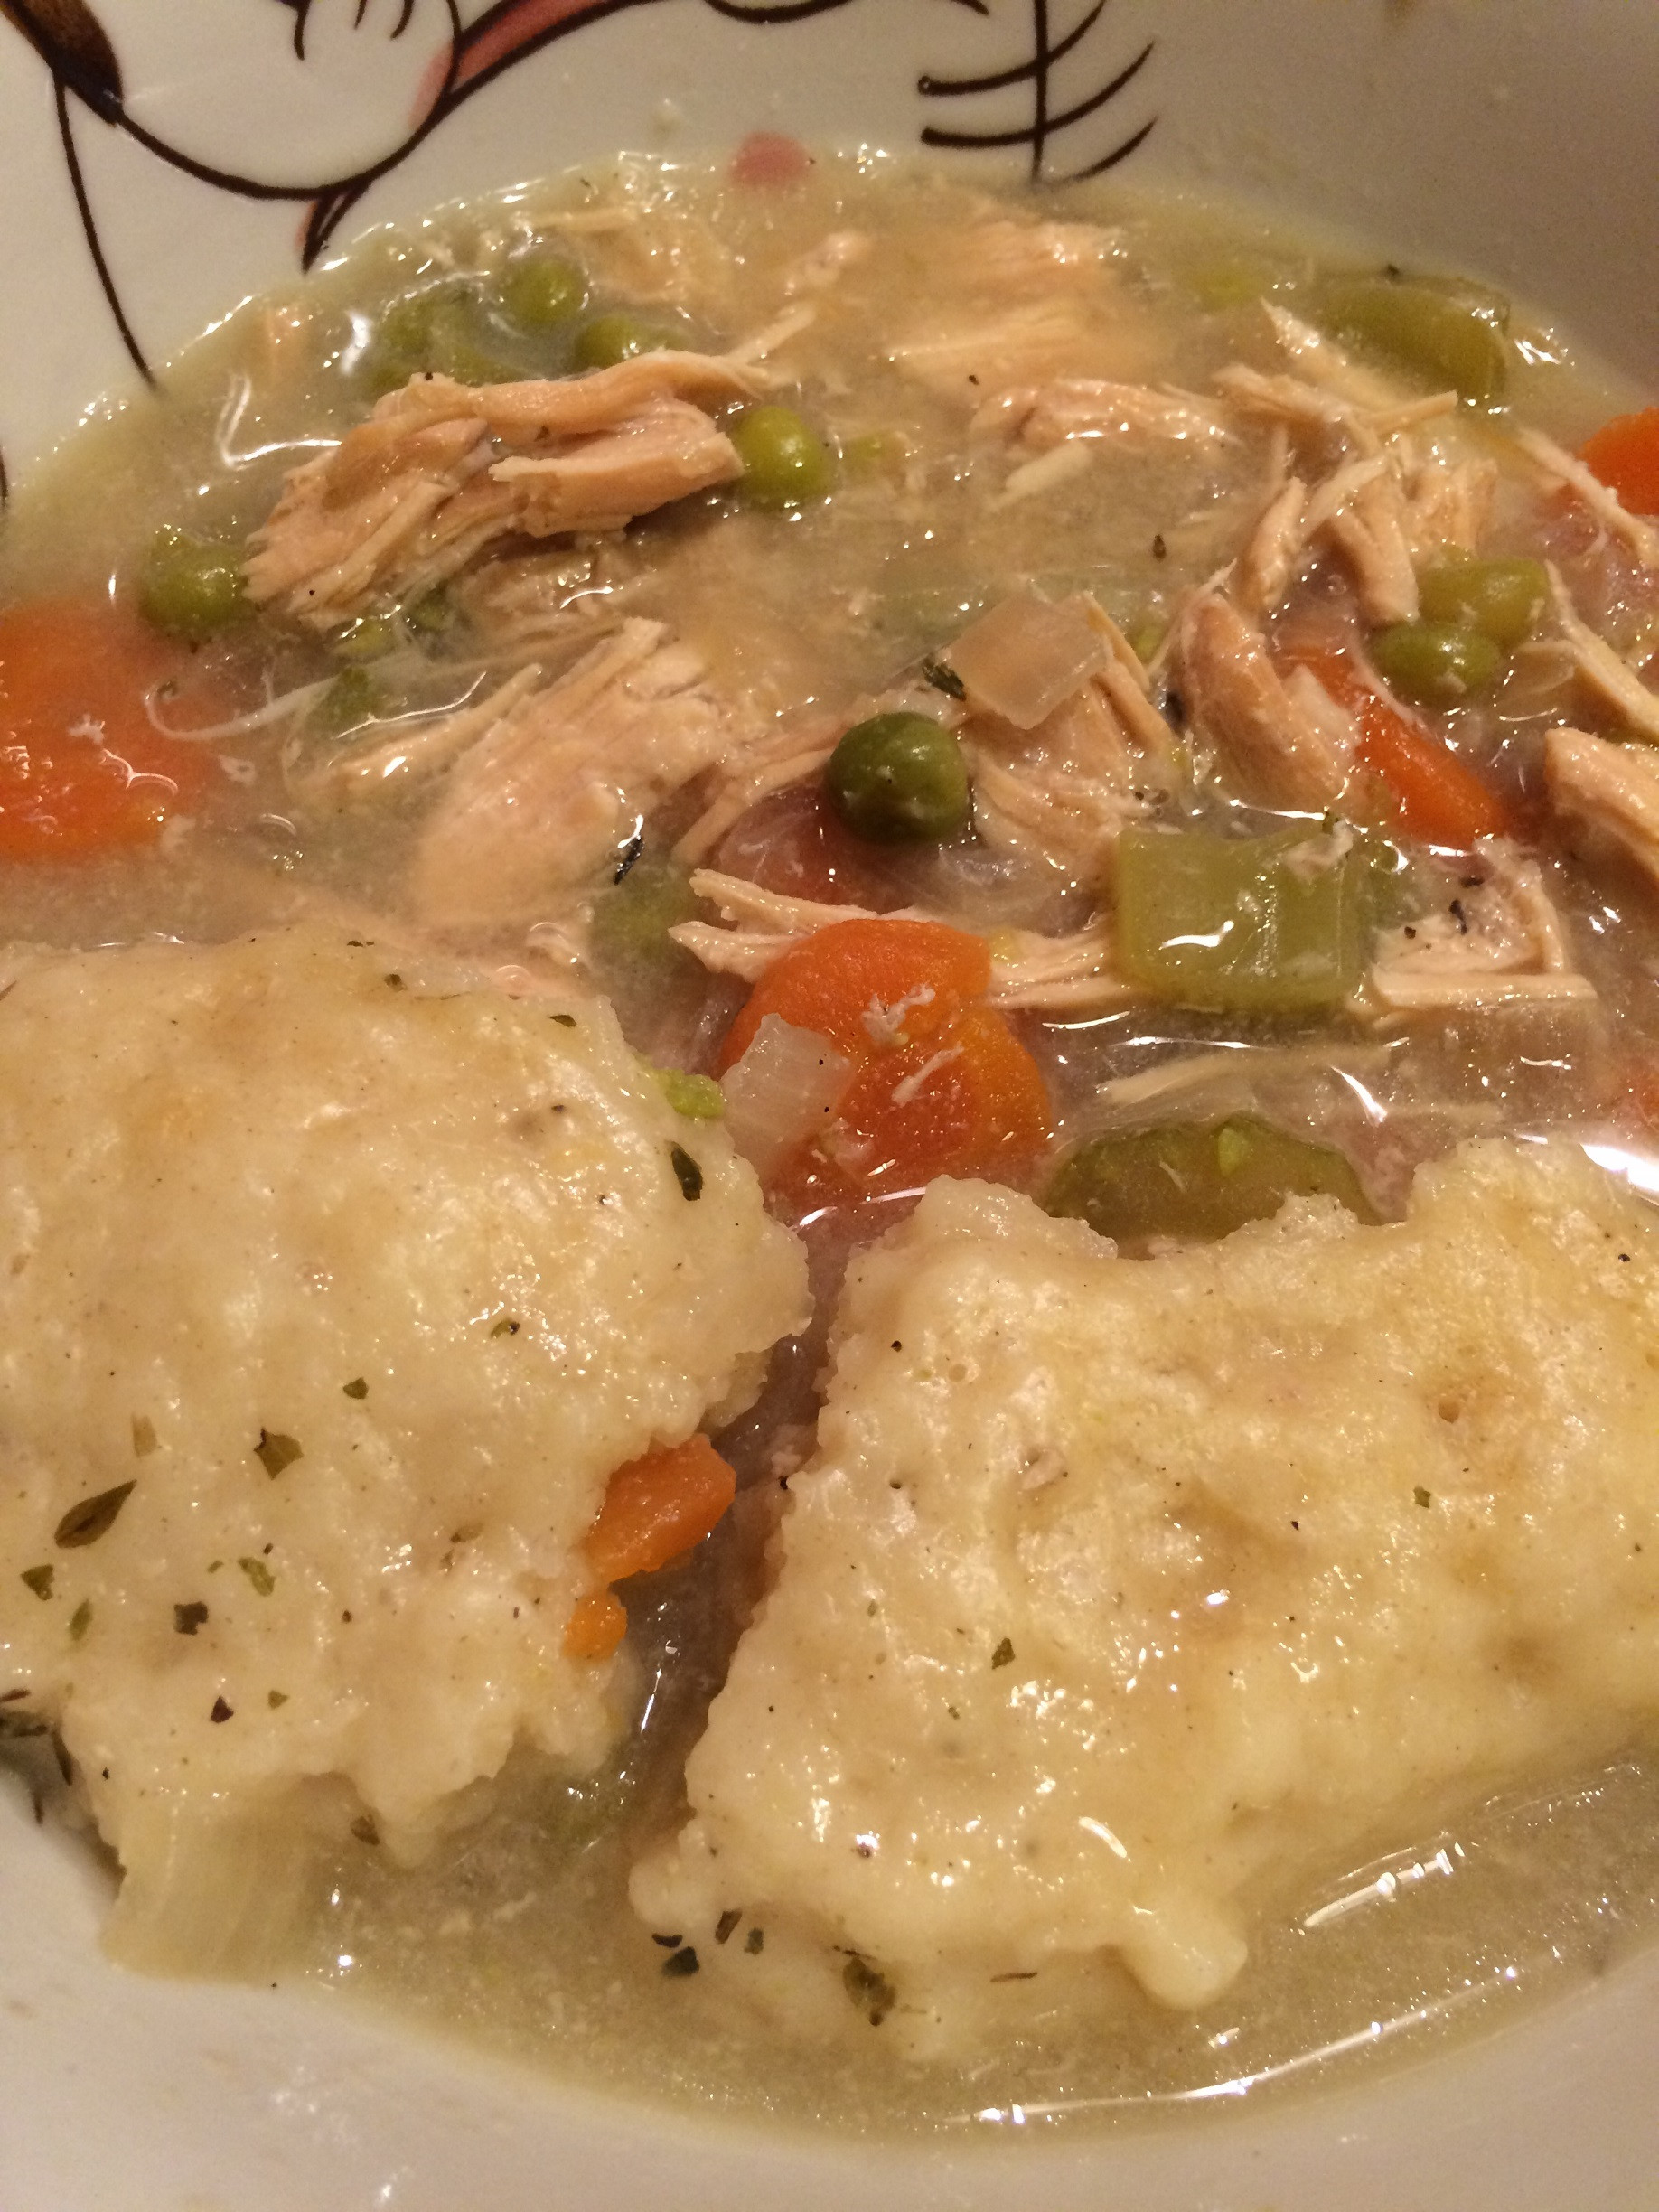 Healthy Slow Cooker Chicken Recipes For Weight Loss  Slow Cooker Chicken & Dumplings Weights and Whiskers